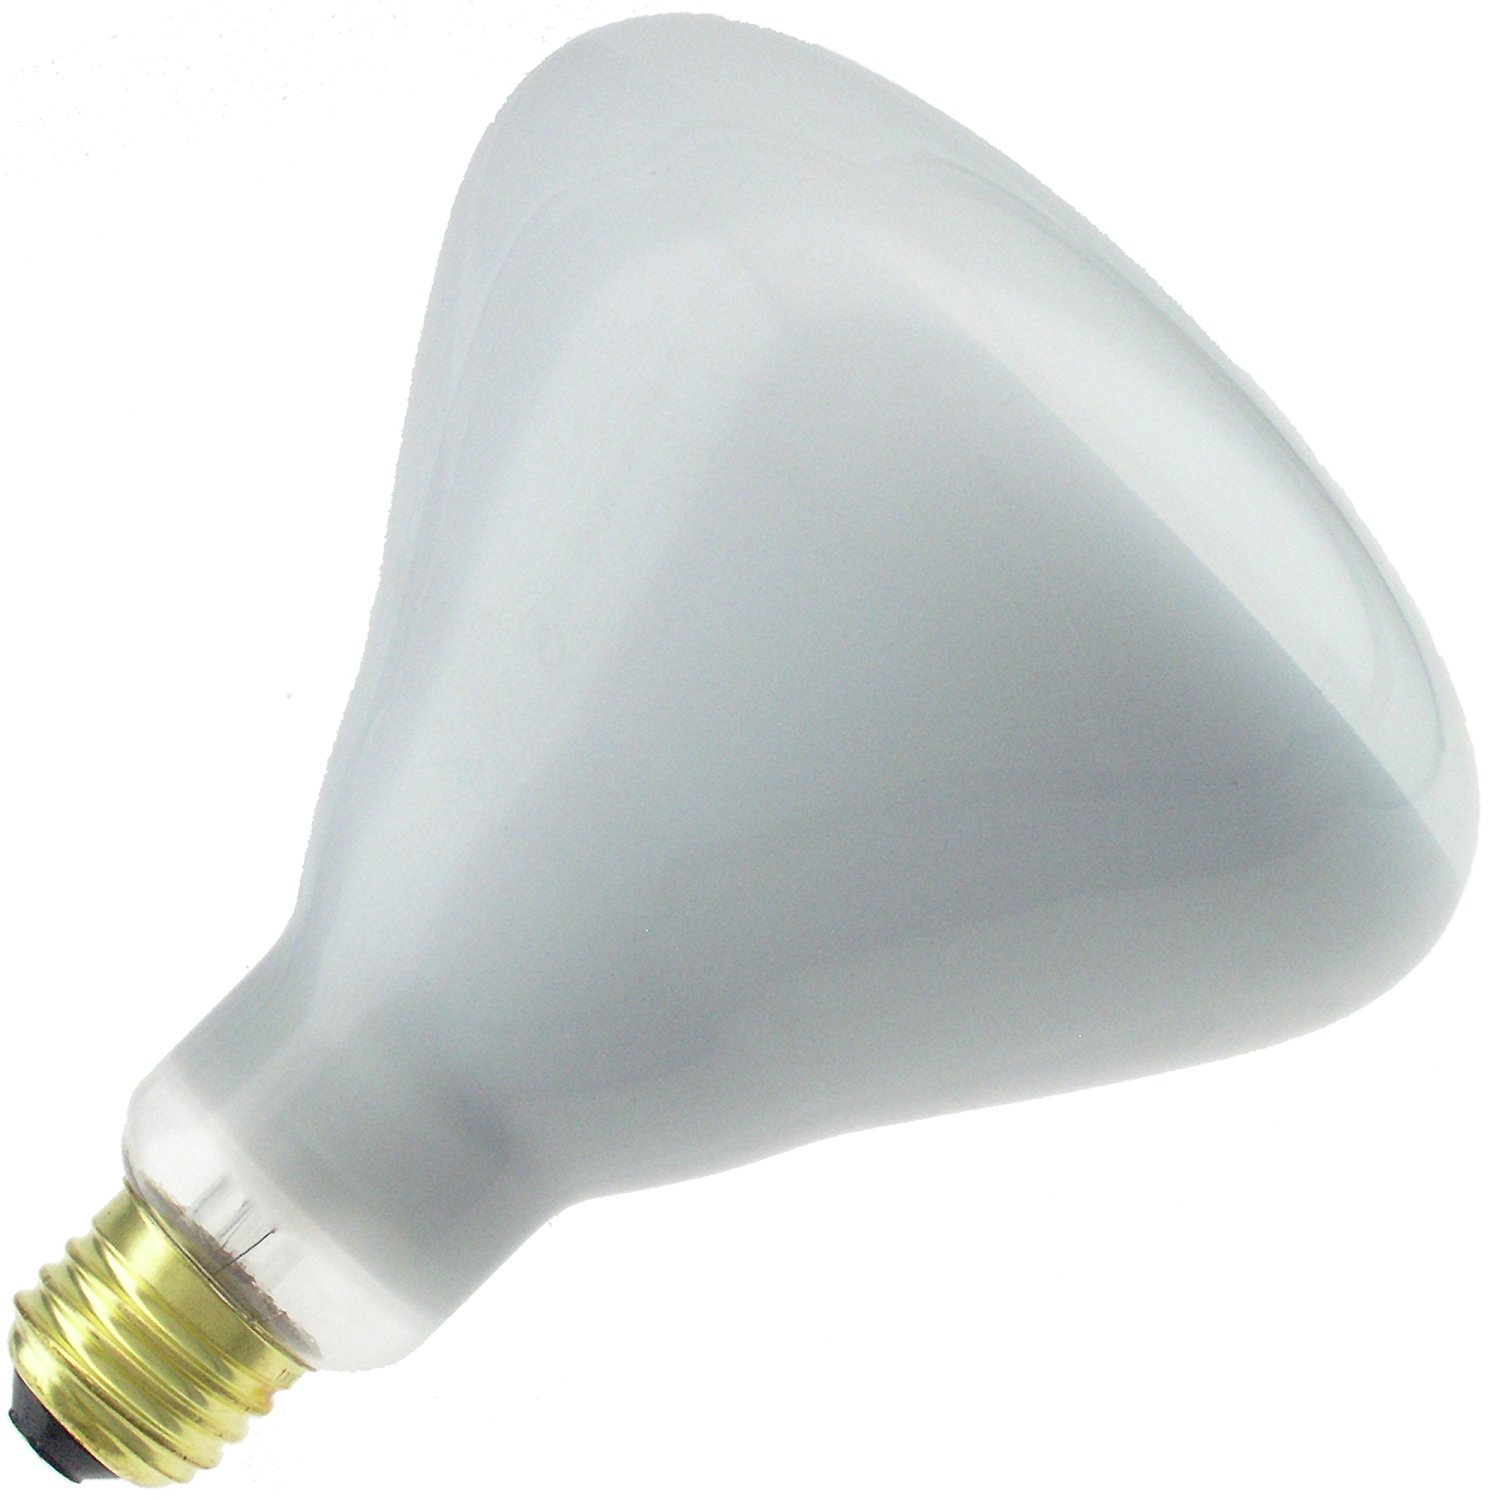 37243eb861cc Get Quotations · Industrial Performance 250 Watt BR40 Shatter Resistant  Clear Heat Lamp